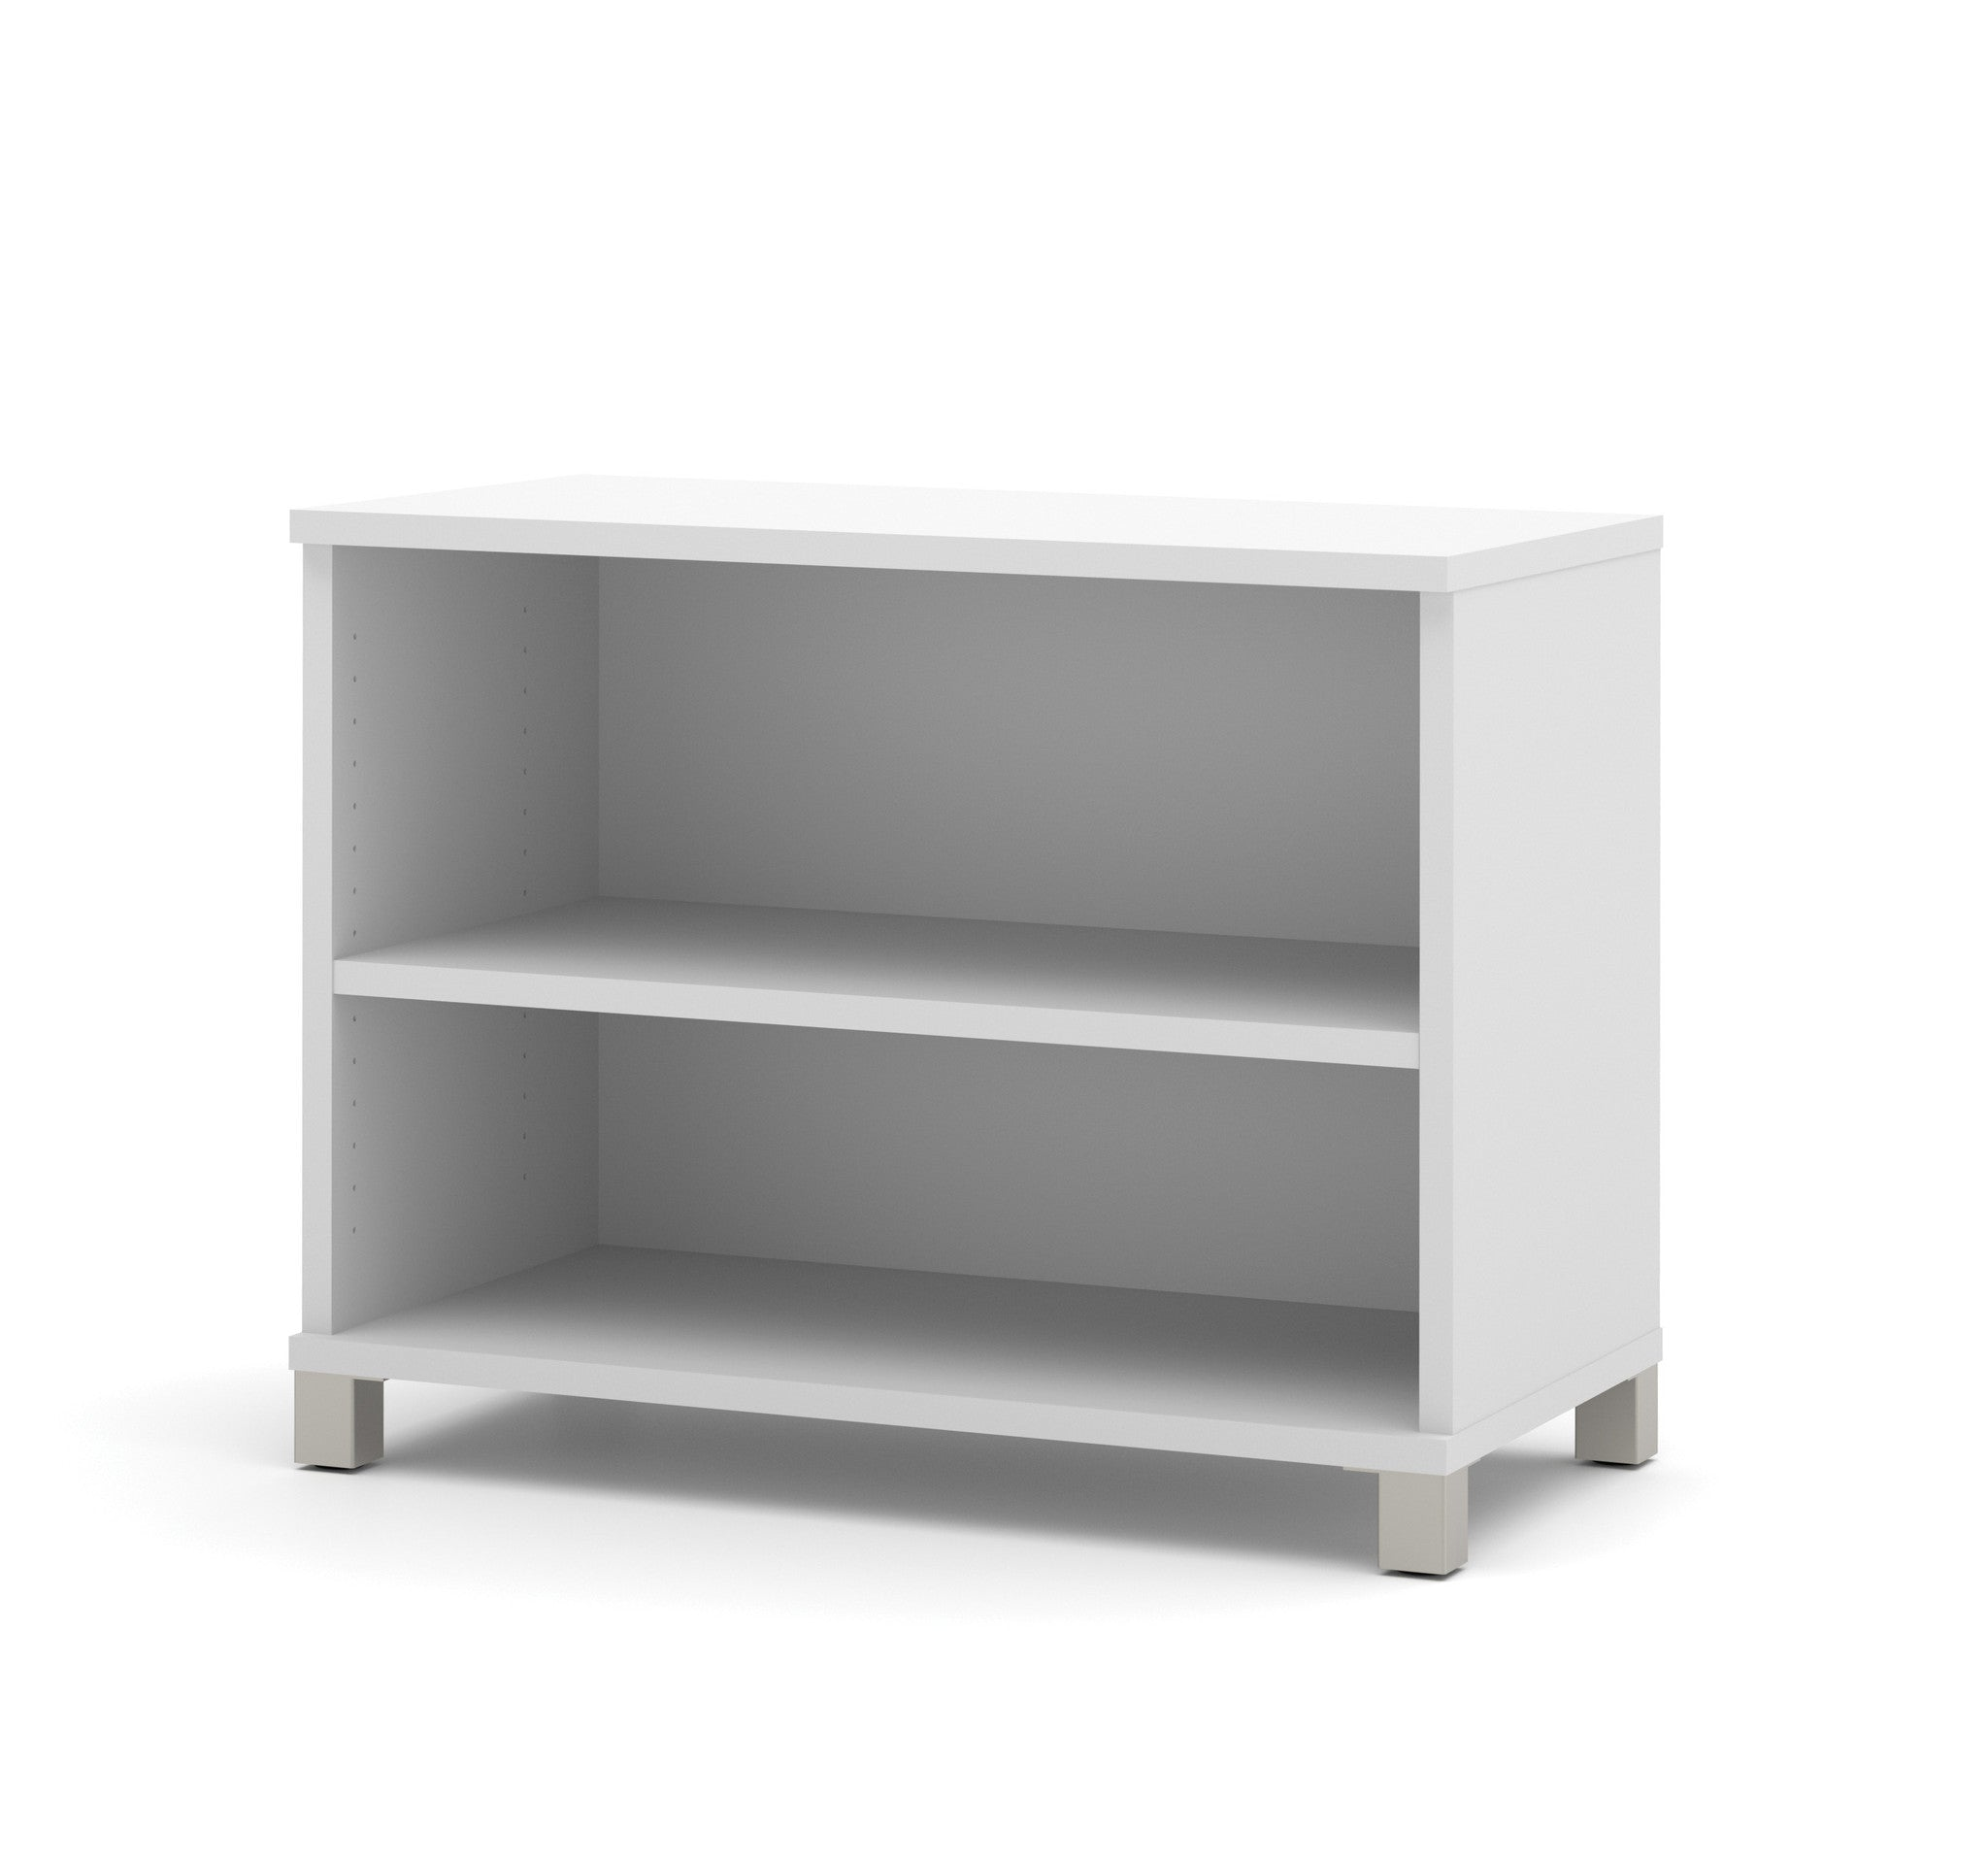 Modern White Two-Shelf Bookcase from Bestar